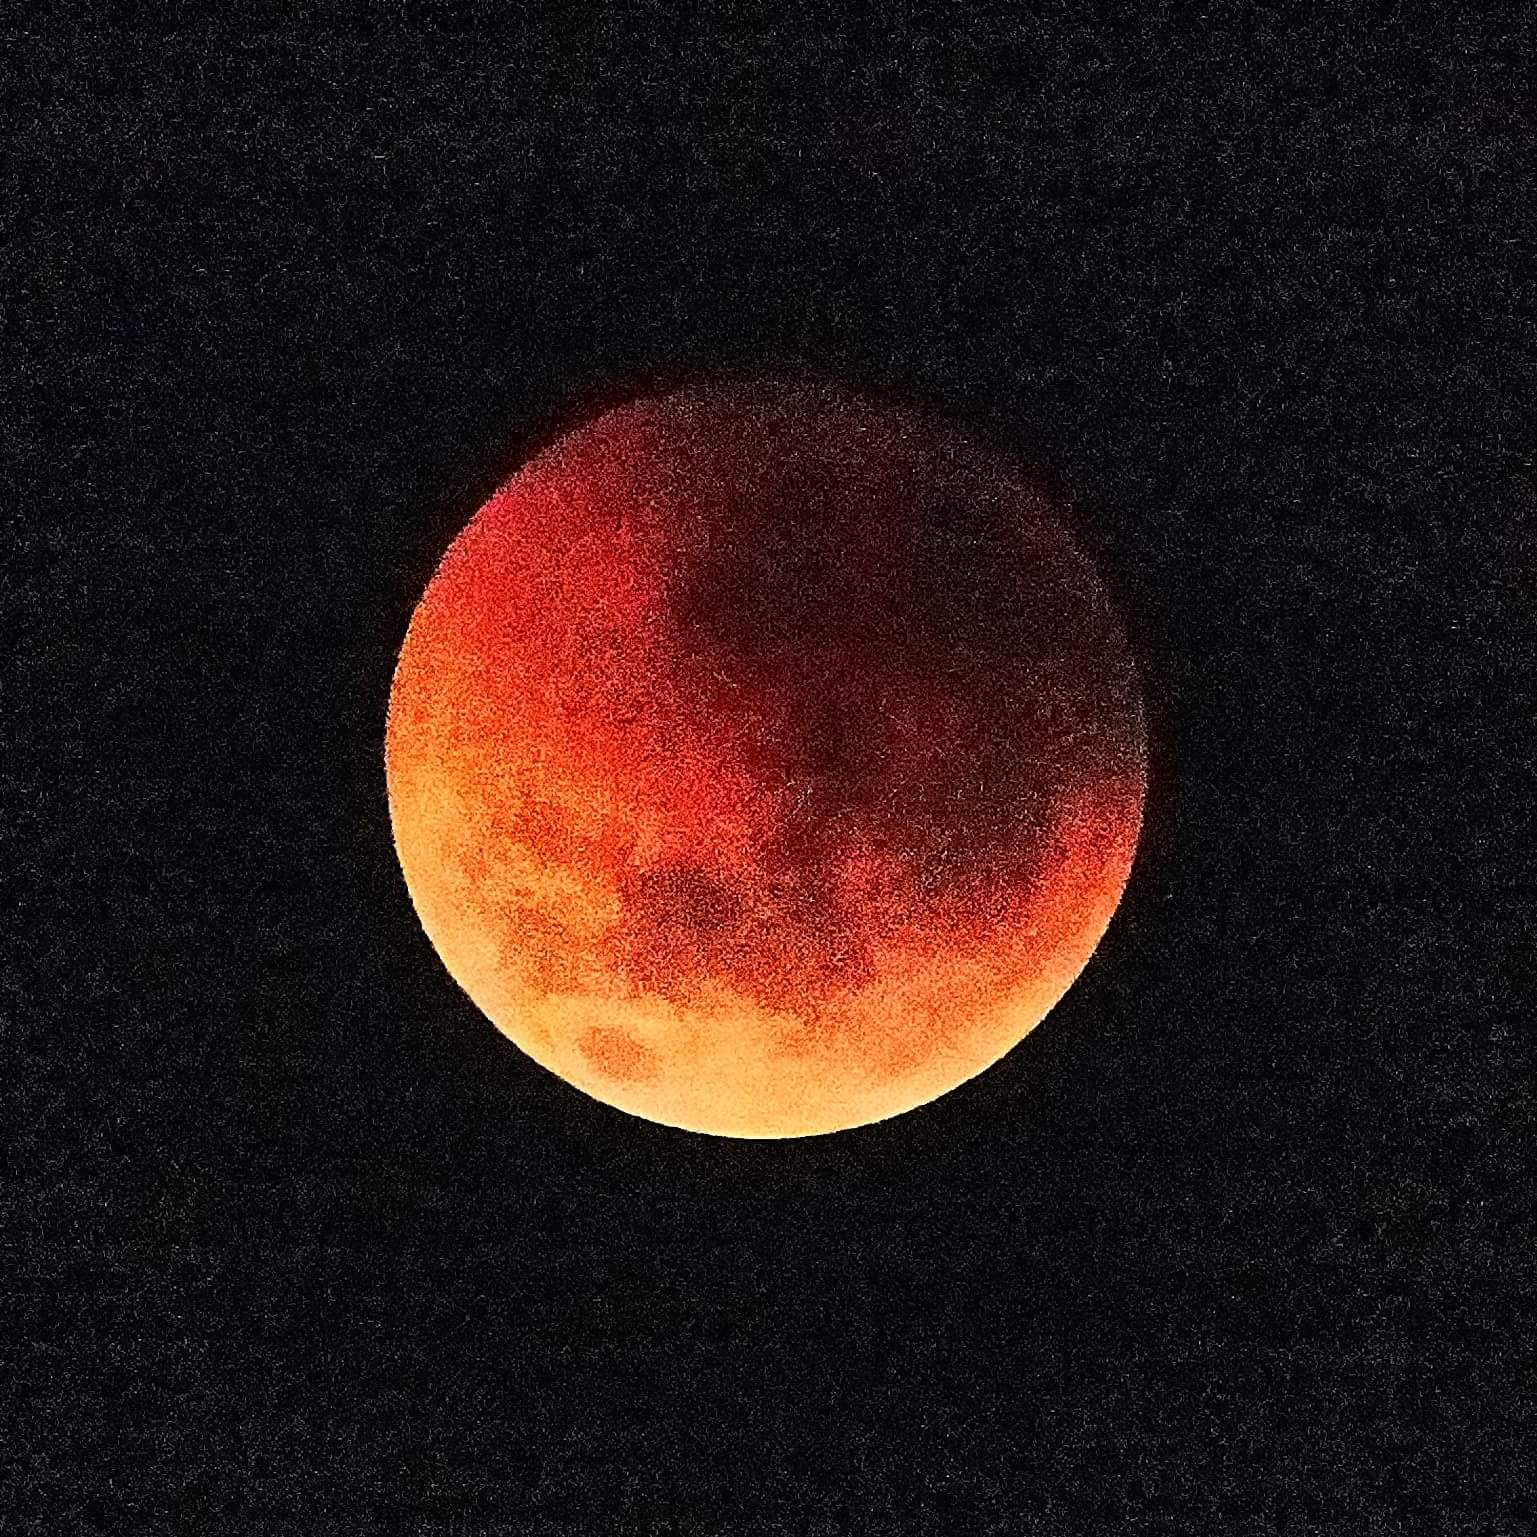 Article image for The big Blood Moon